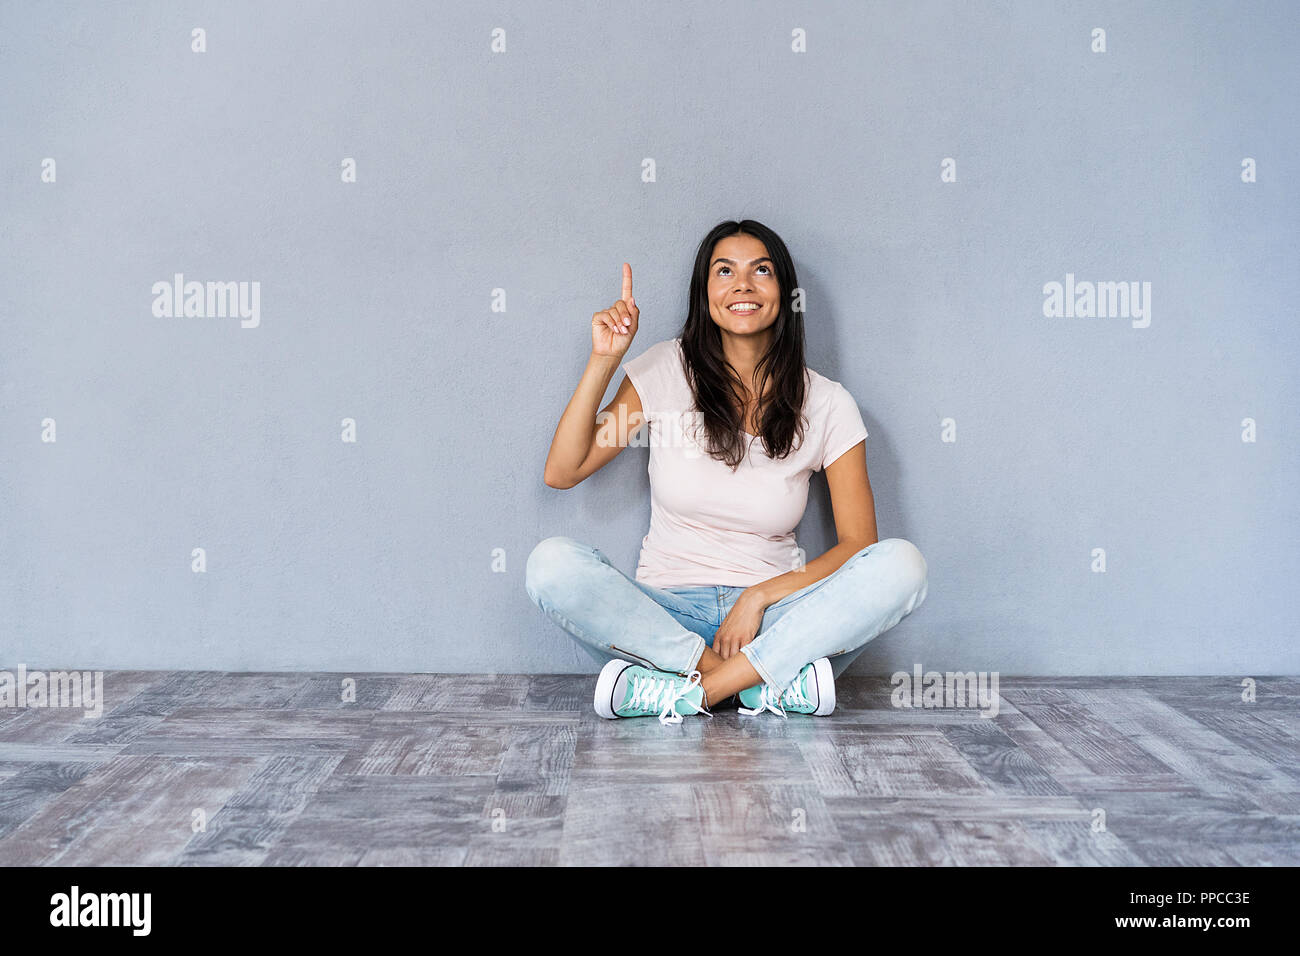 Have idea! Cute woman in casual clothes sitting with legs crossed on the floor gesturing index finger up, meaning eureka over grey wall. - Stock Image